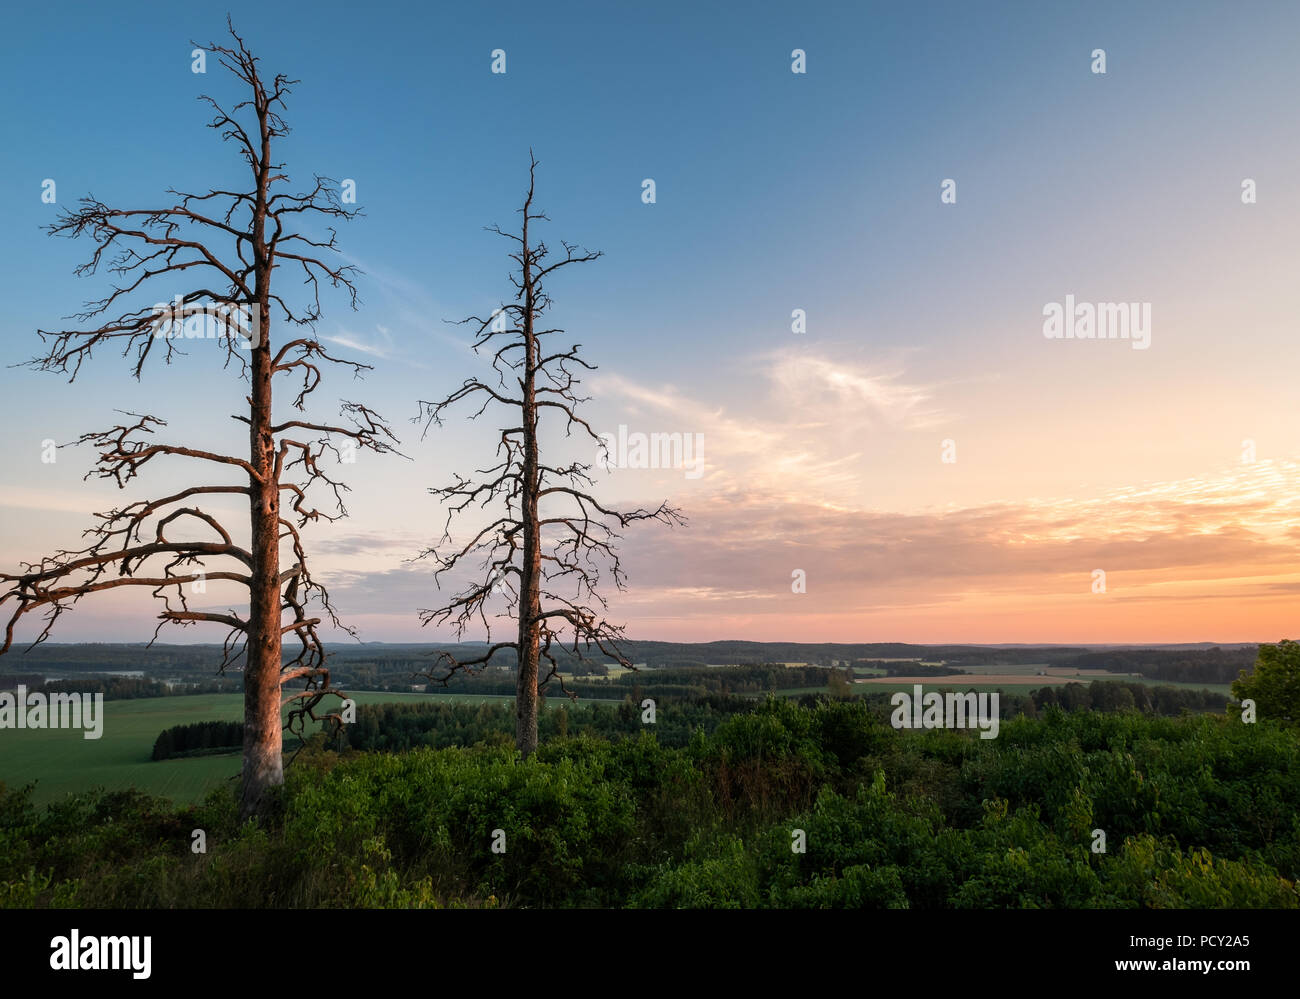 Two old trees with beautiful sunset at summer evening in Finland - Stock Image